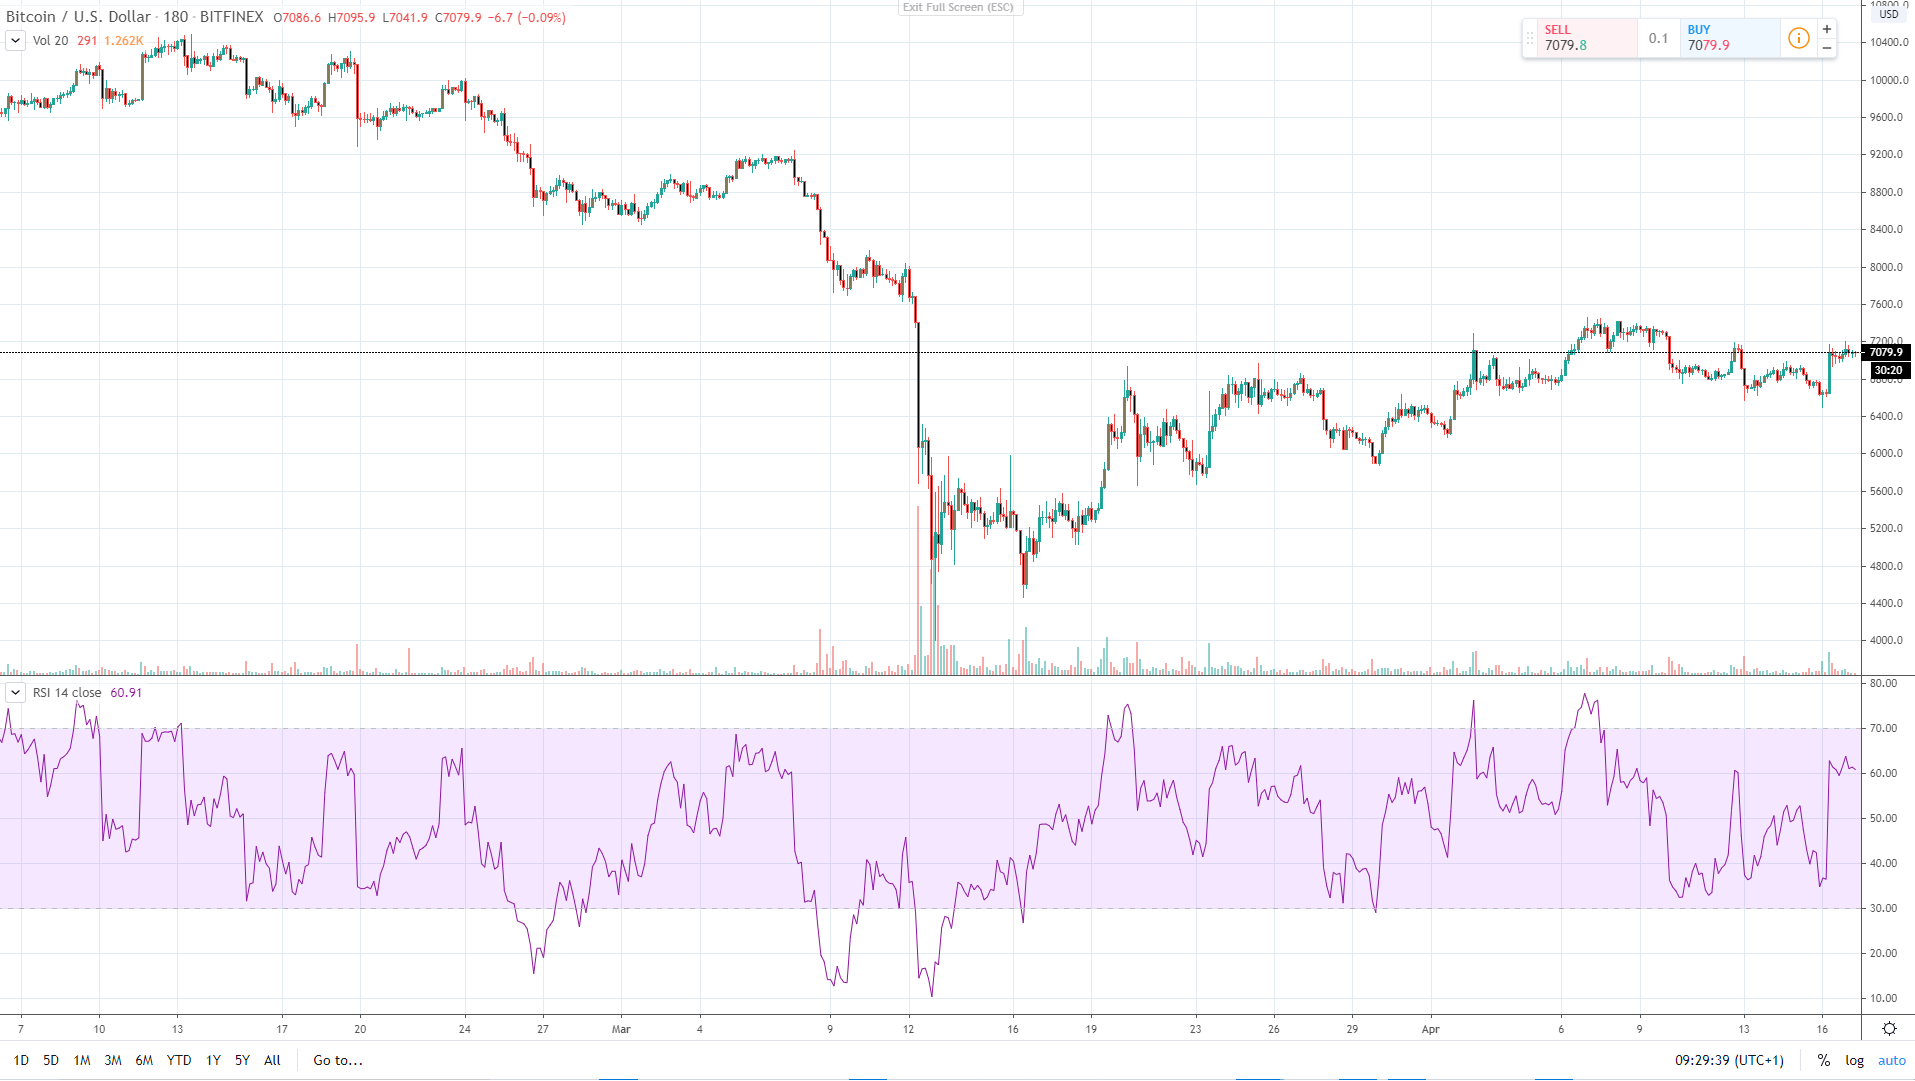 Markets graph for BTC-USD pair performance in March-April (BITFINEX).